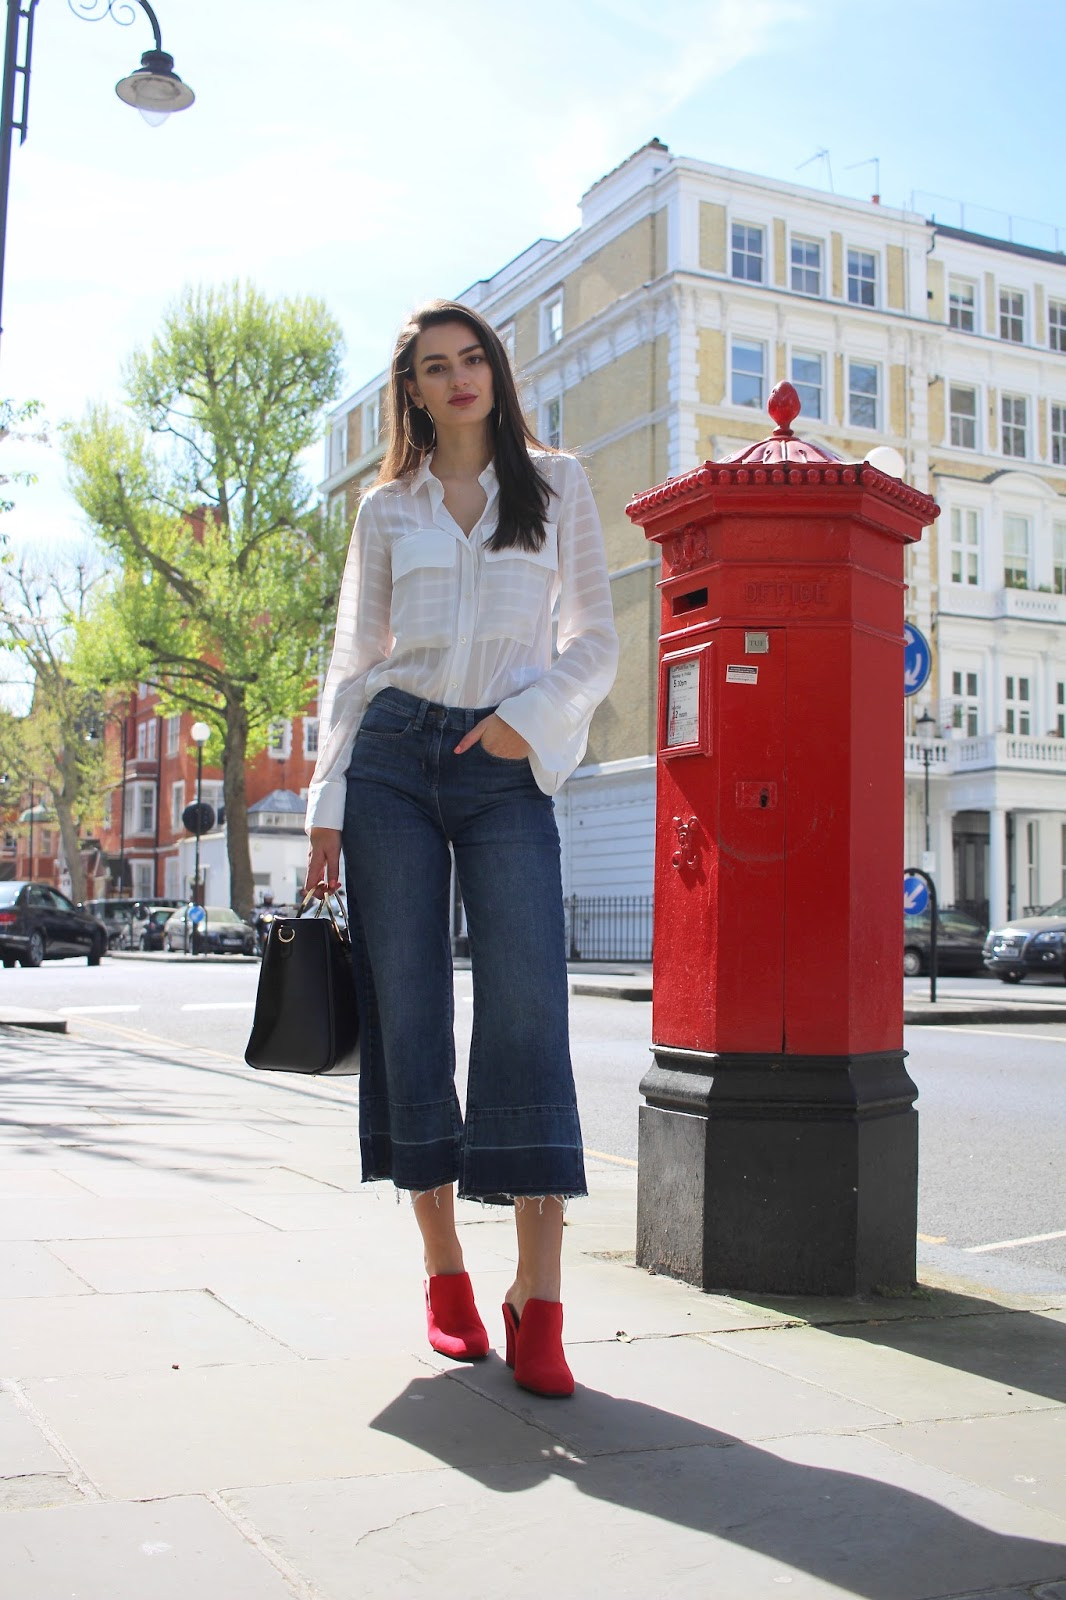 head-to-toe-next peexo spring style blogger london